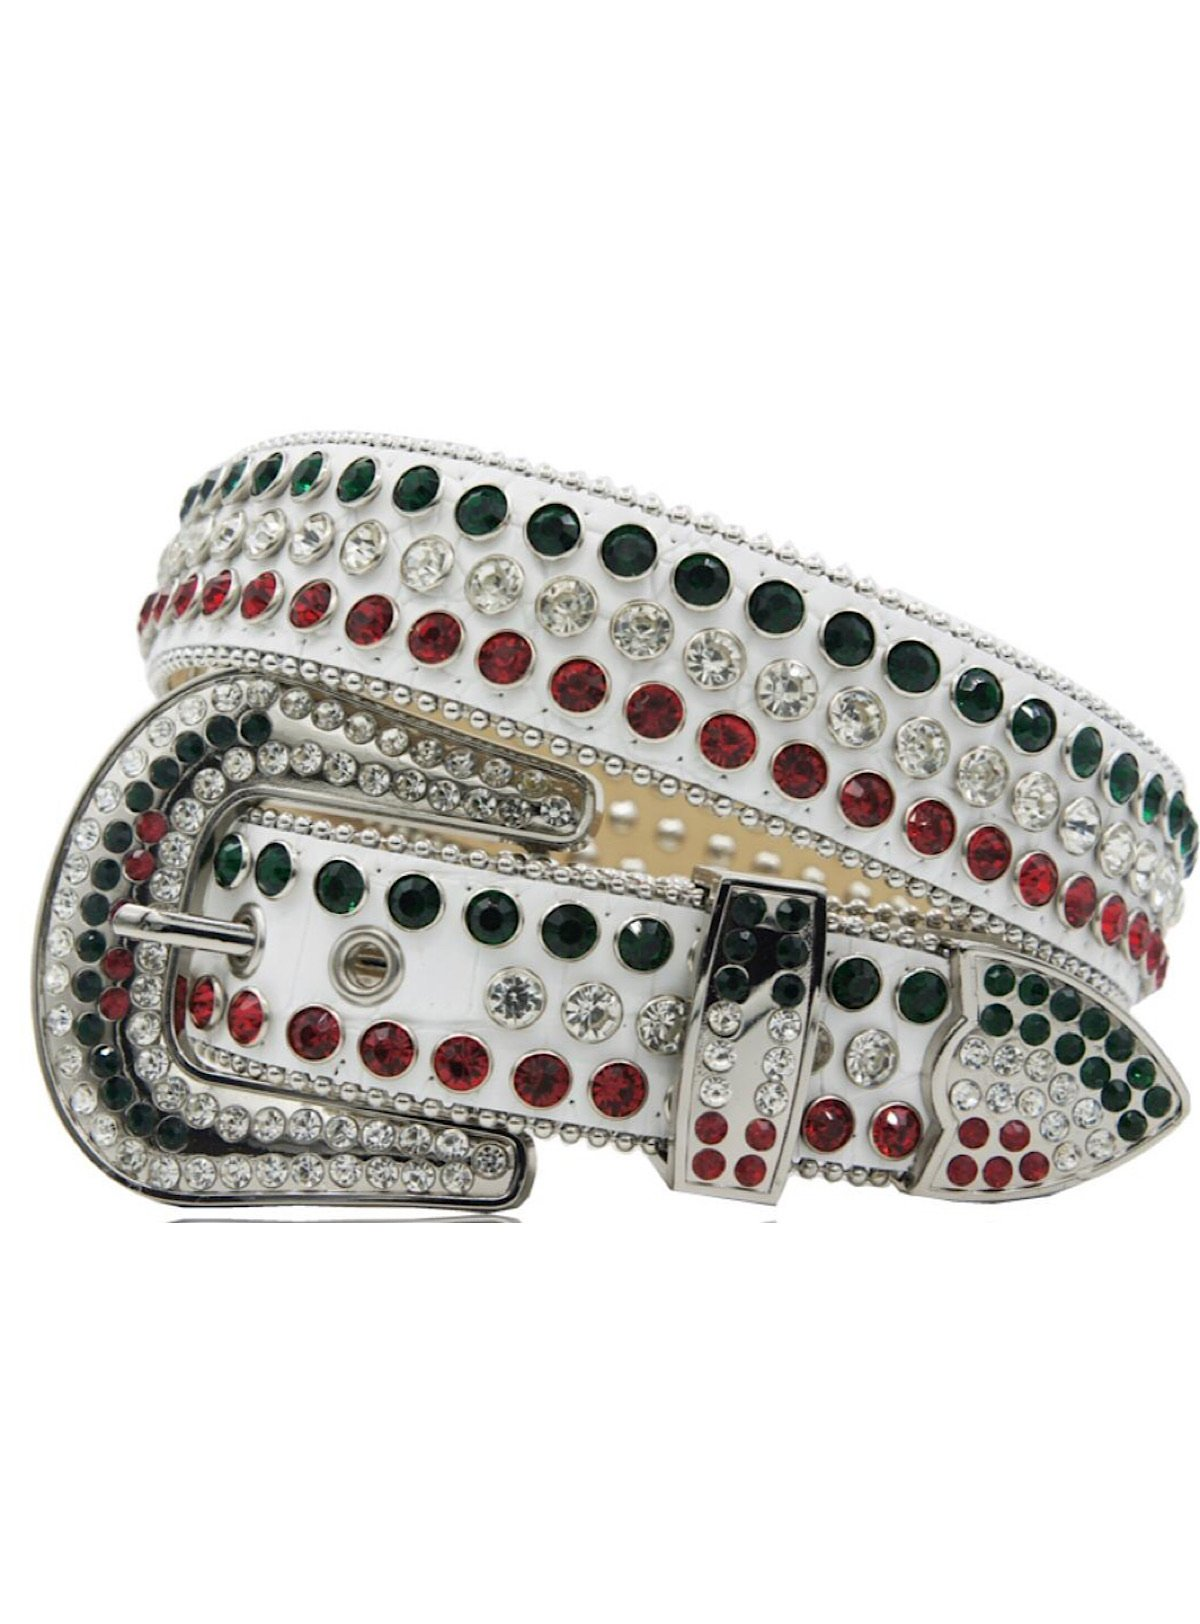 DNA Belt - Stones - White Leather With Green And Red Stones